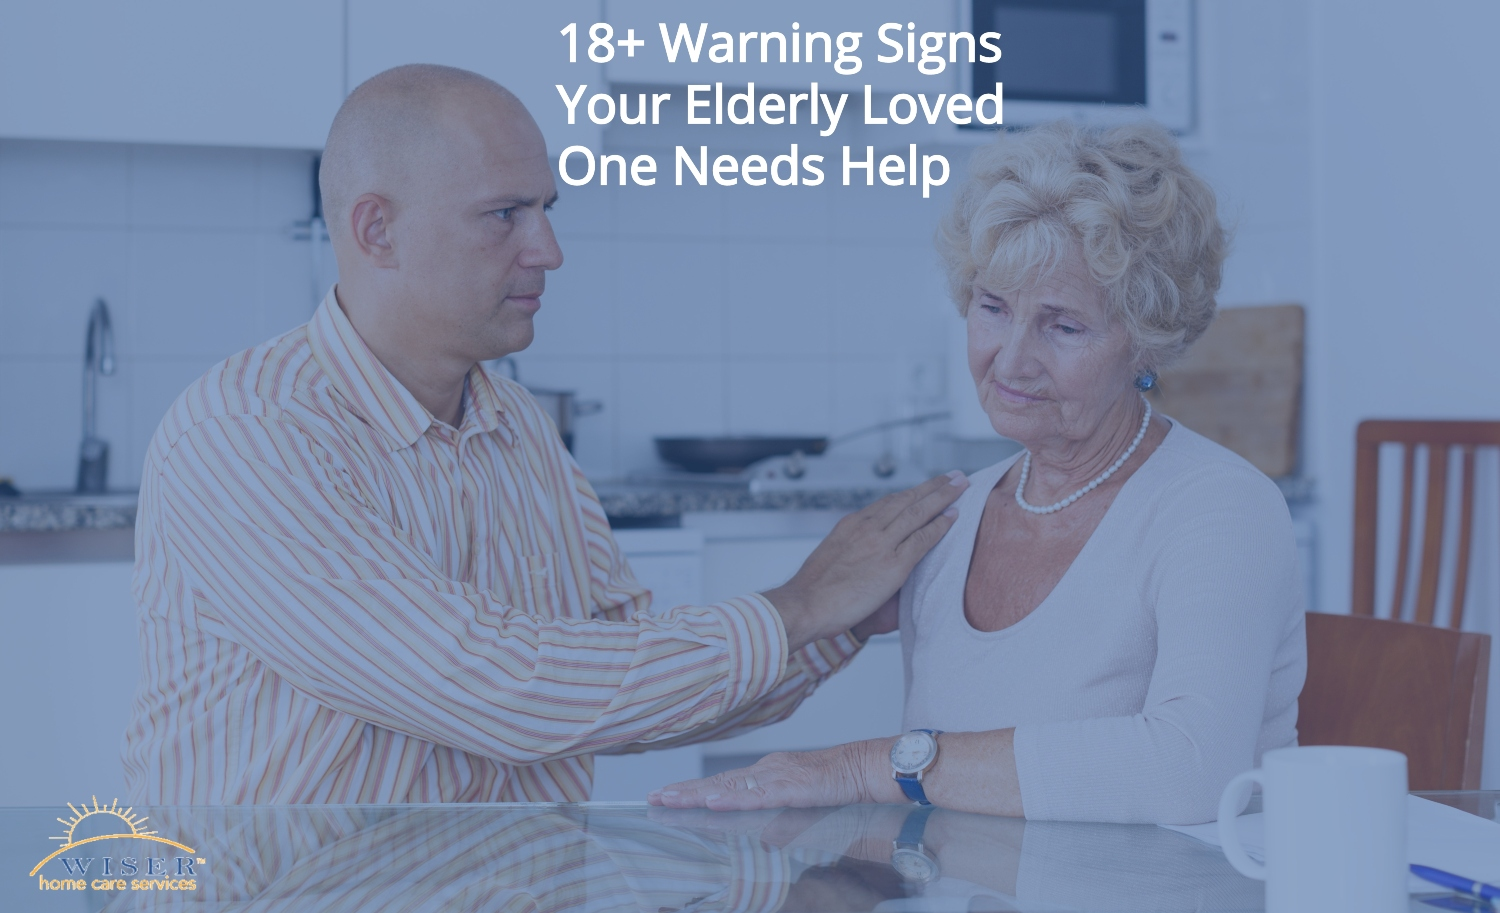 18+ Warning Signs Your Elderly Loved One Needs Help